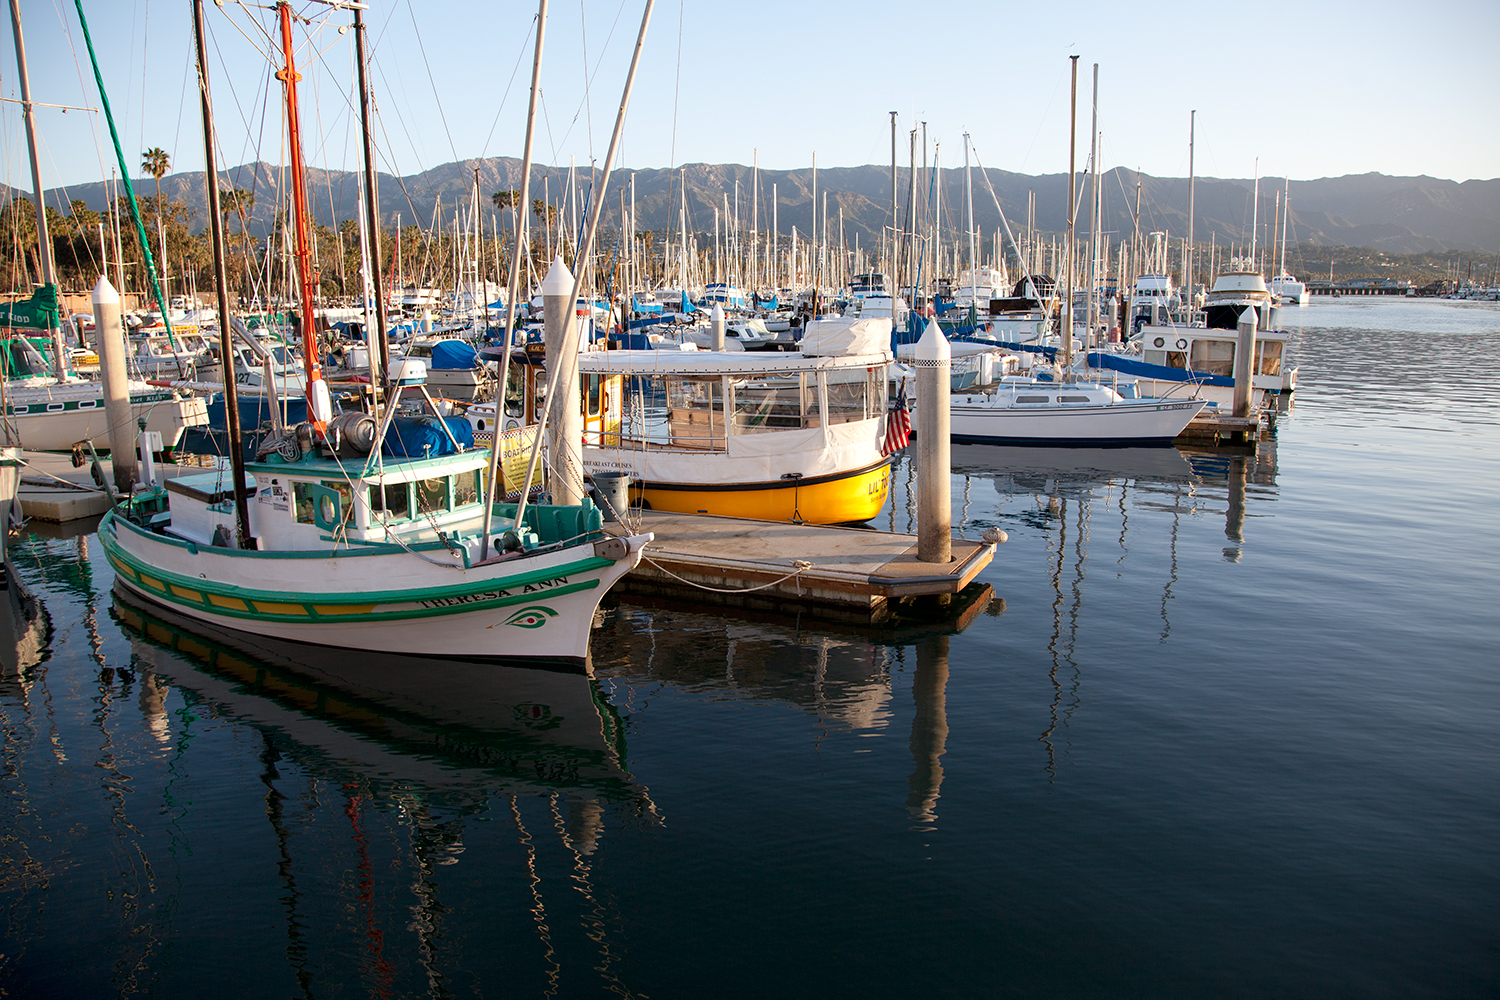 Boats in the Santa Barbara Harbor.